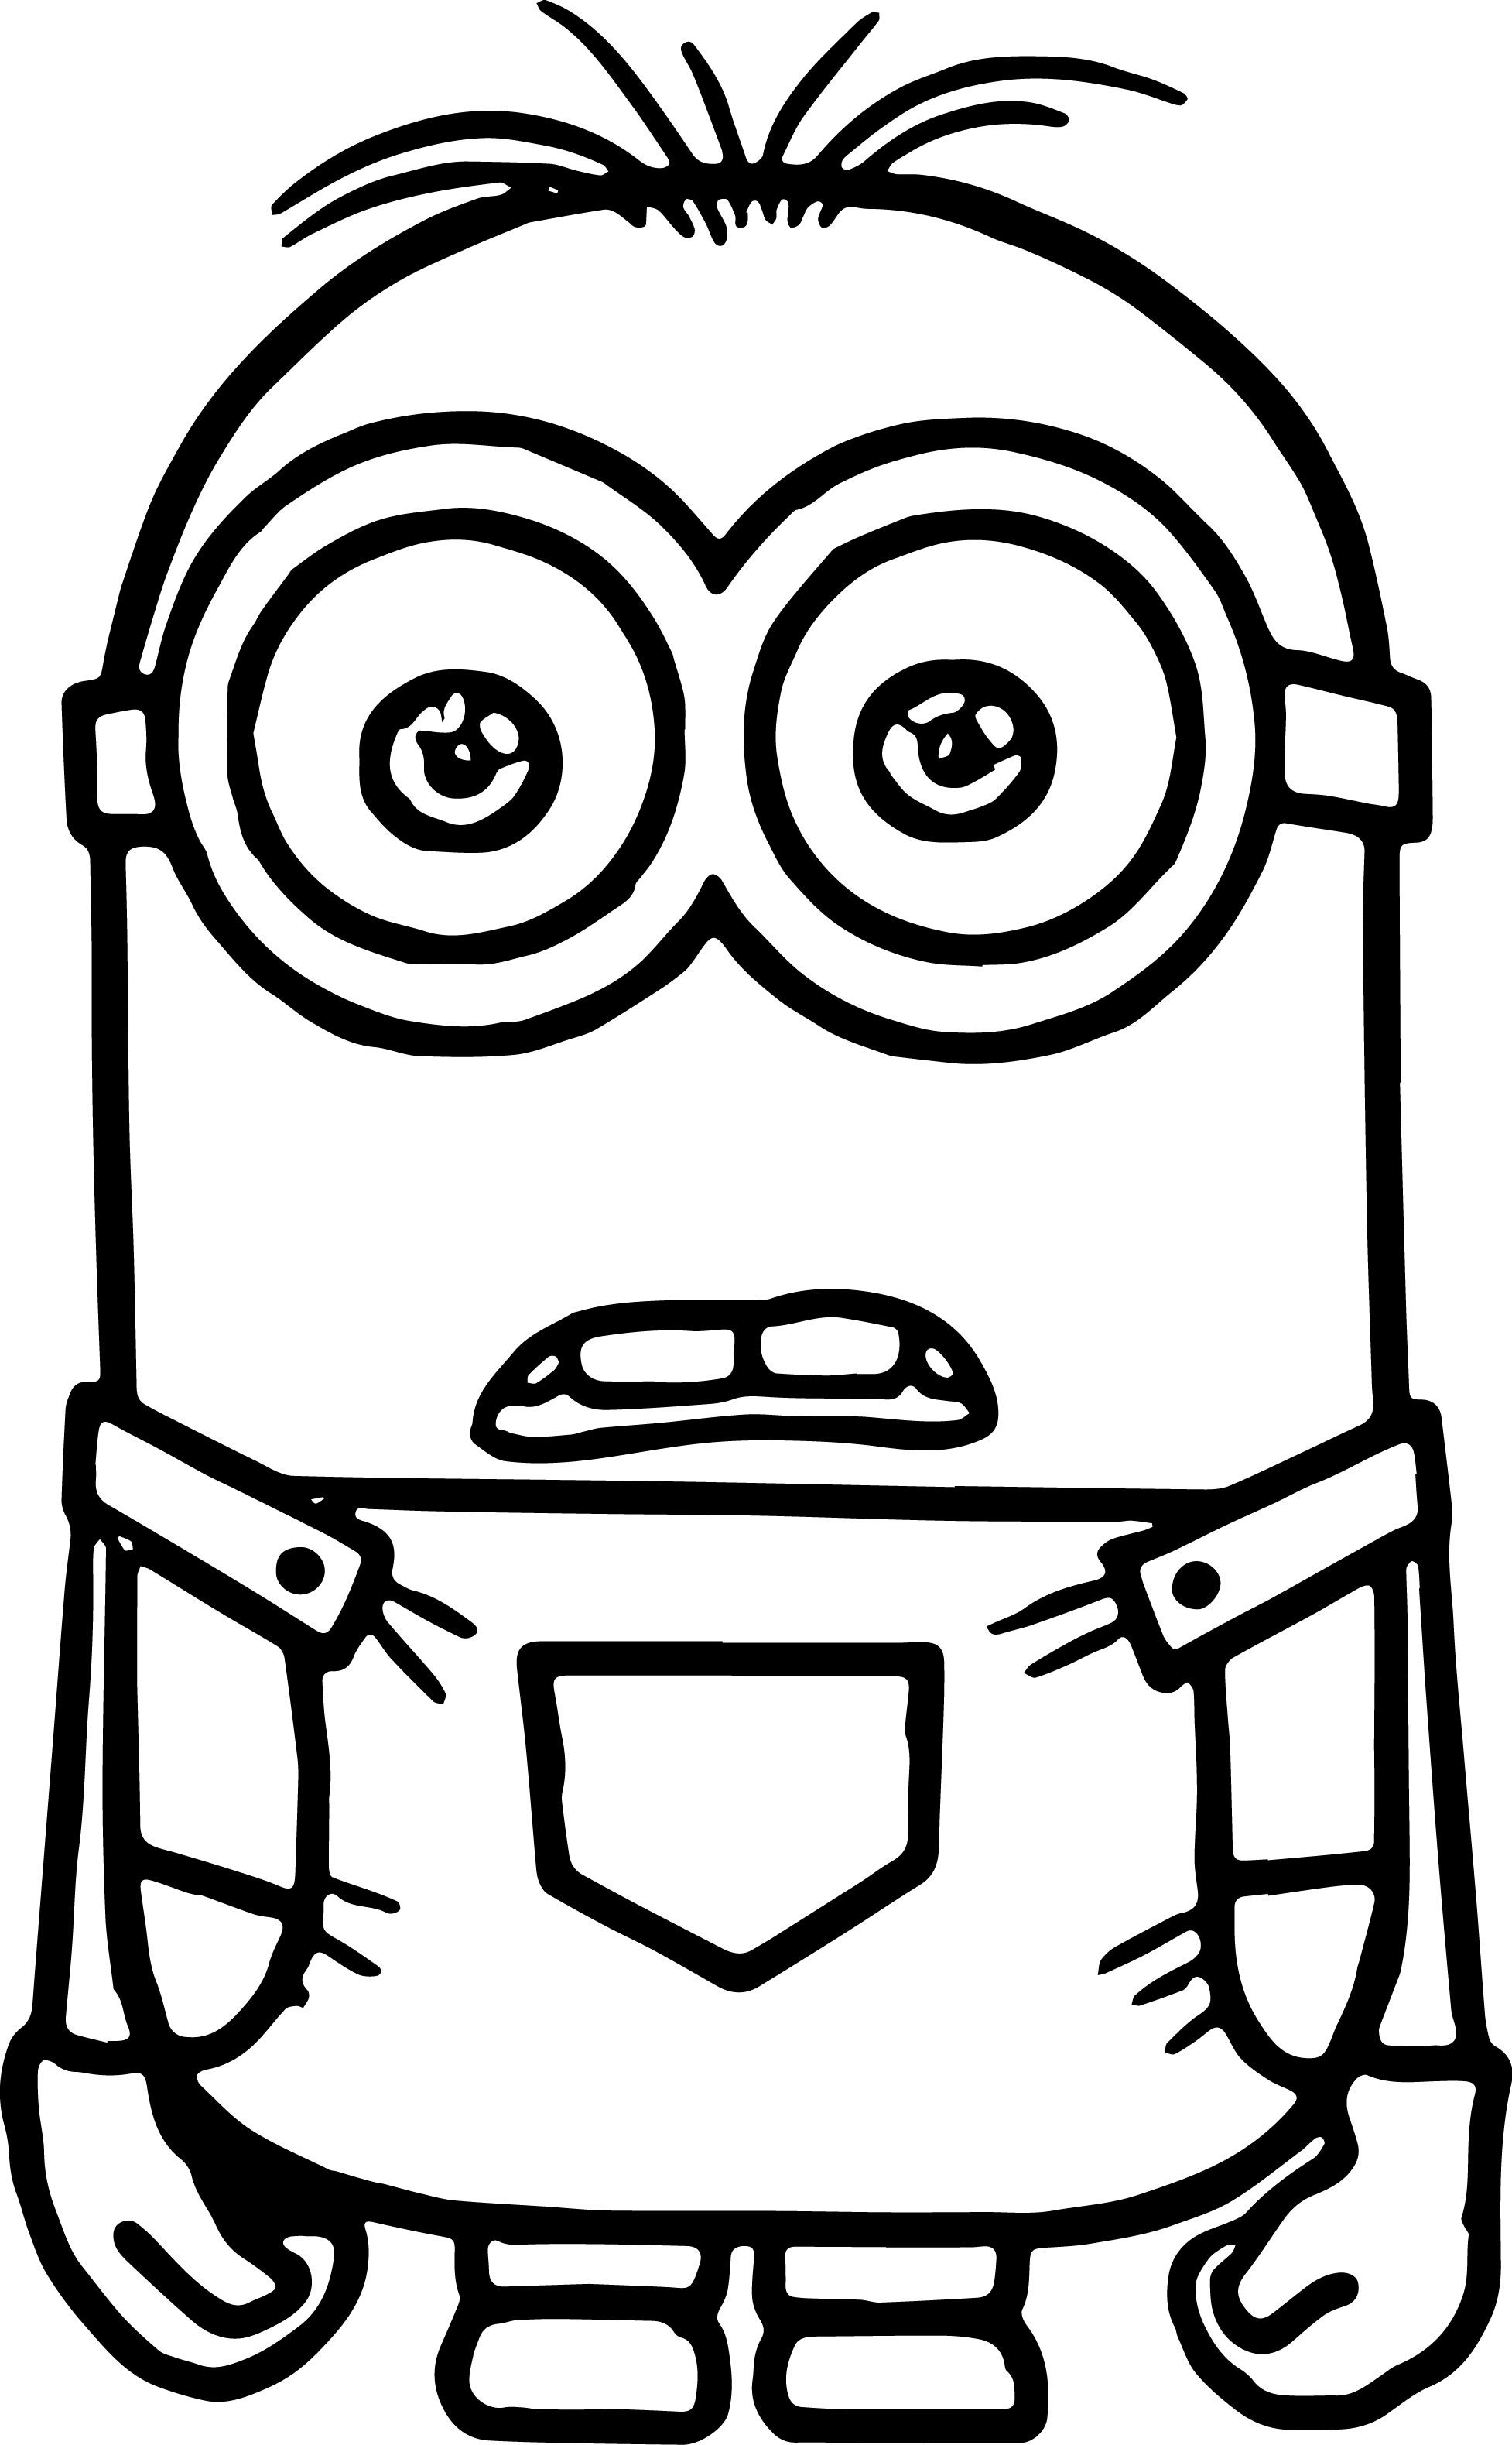 minion is beatiful and very cute characters you can find here minions coloring pages - Minion Coloring Pages